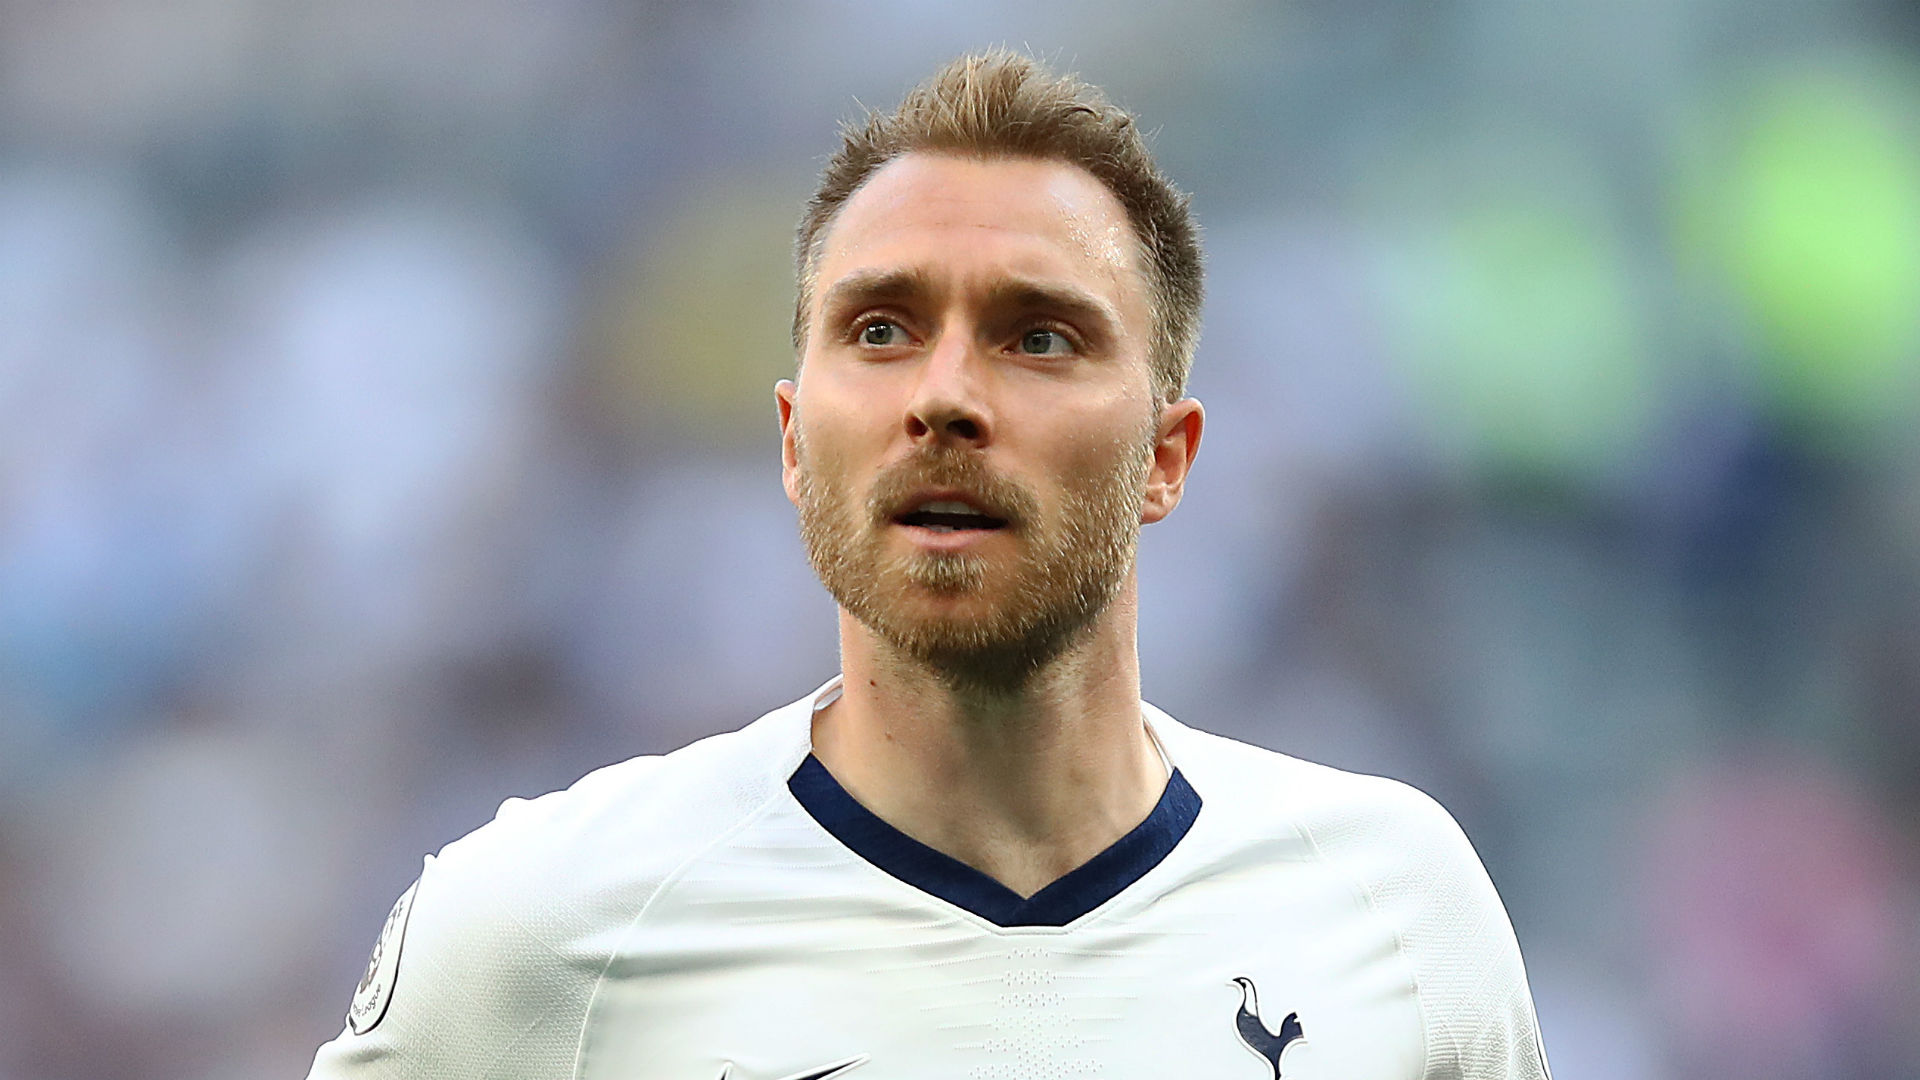 Tottenham star Christian Eriksen is reportedly closing in on a move to Serie A side Inter.